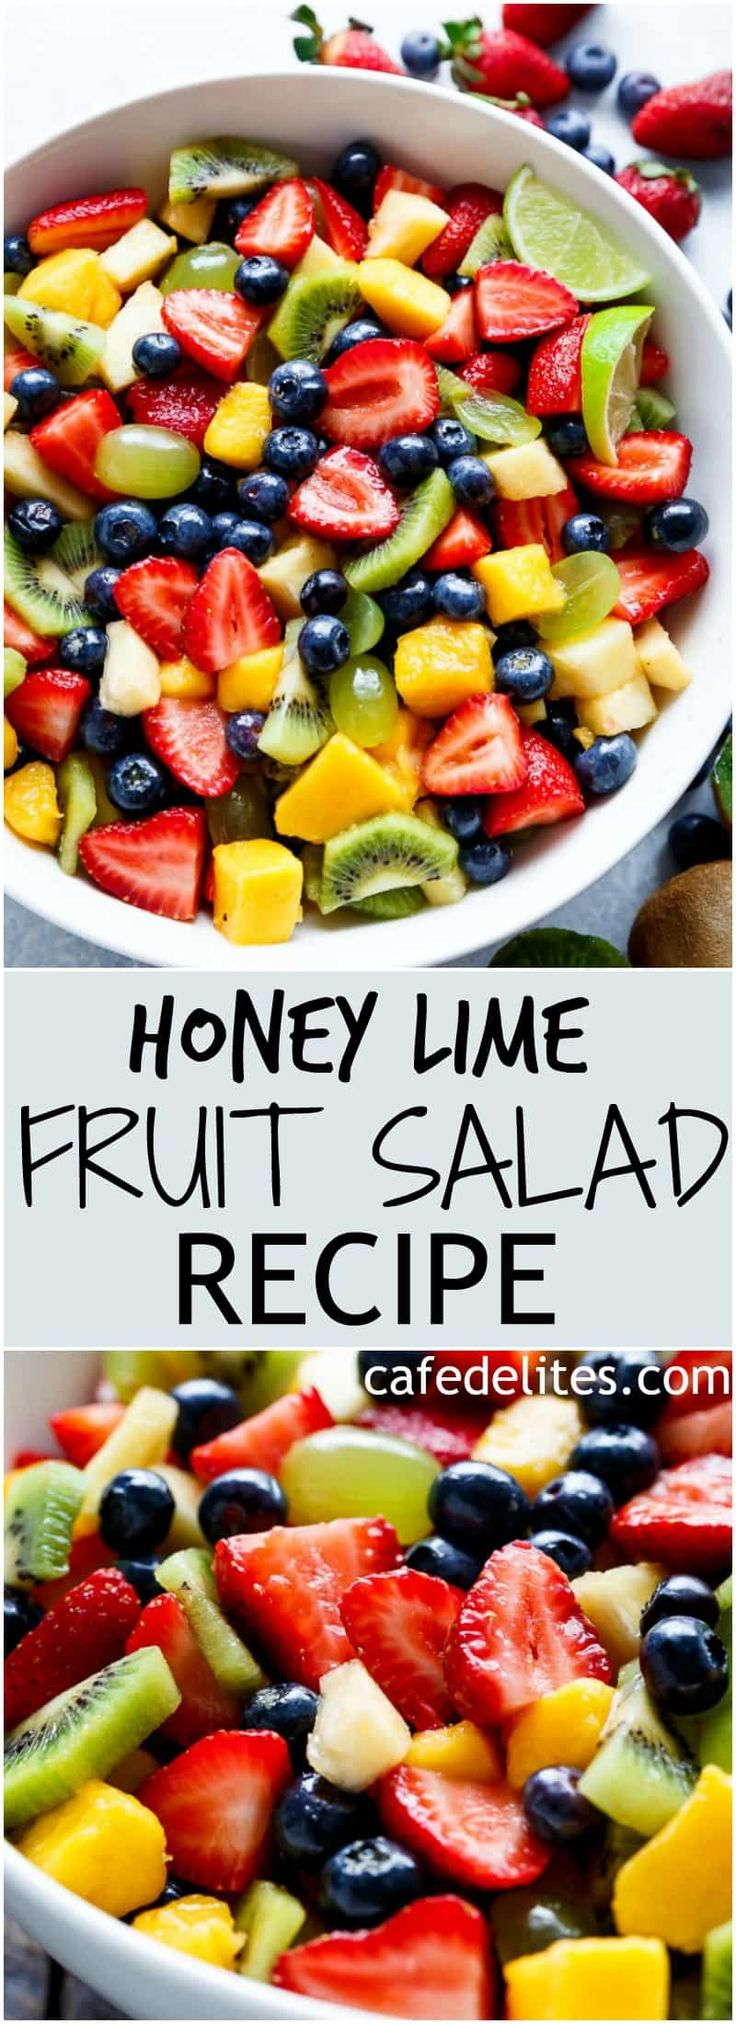 Honey Lime Fruit Salad is an incredible tasting and refreshing fruit salad! If you love honey and lime, you will LOVE a bowl of this fruit salad! | https://cafedelites.com